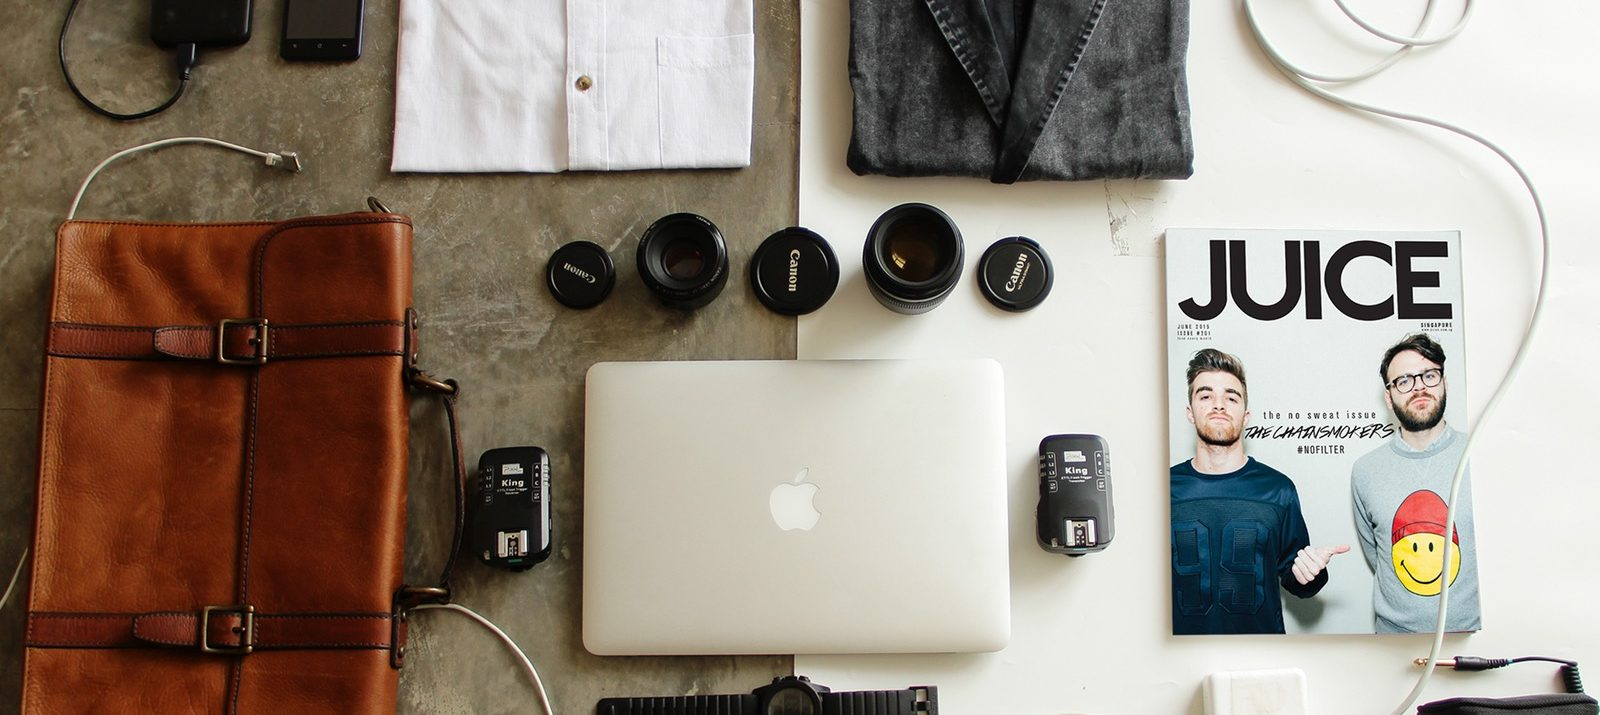 organizing your stuff: leather bag, macbook, watch, shirts, shoes, a magazine, photography accessories, cords, pencils, and a pen